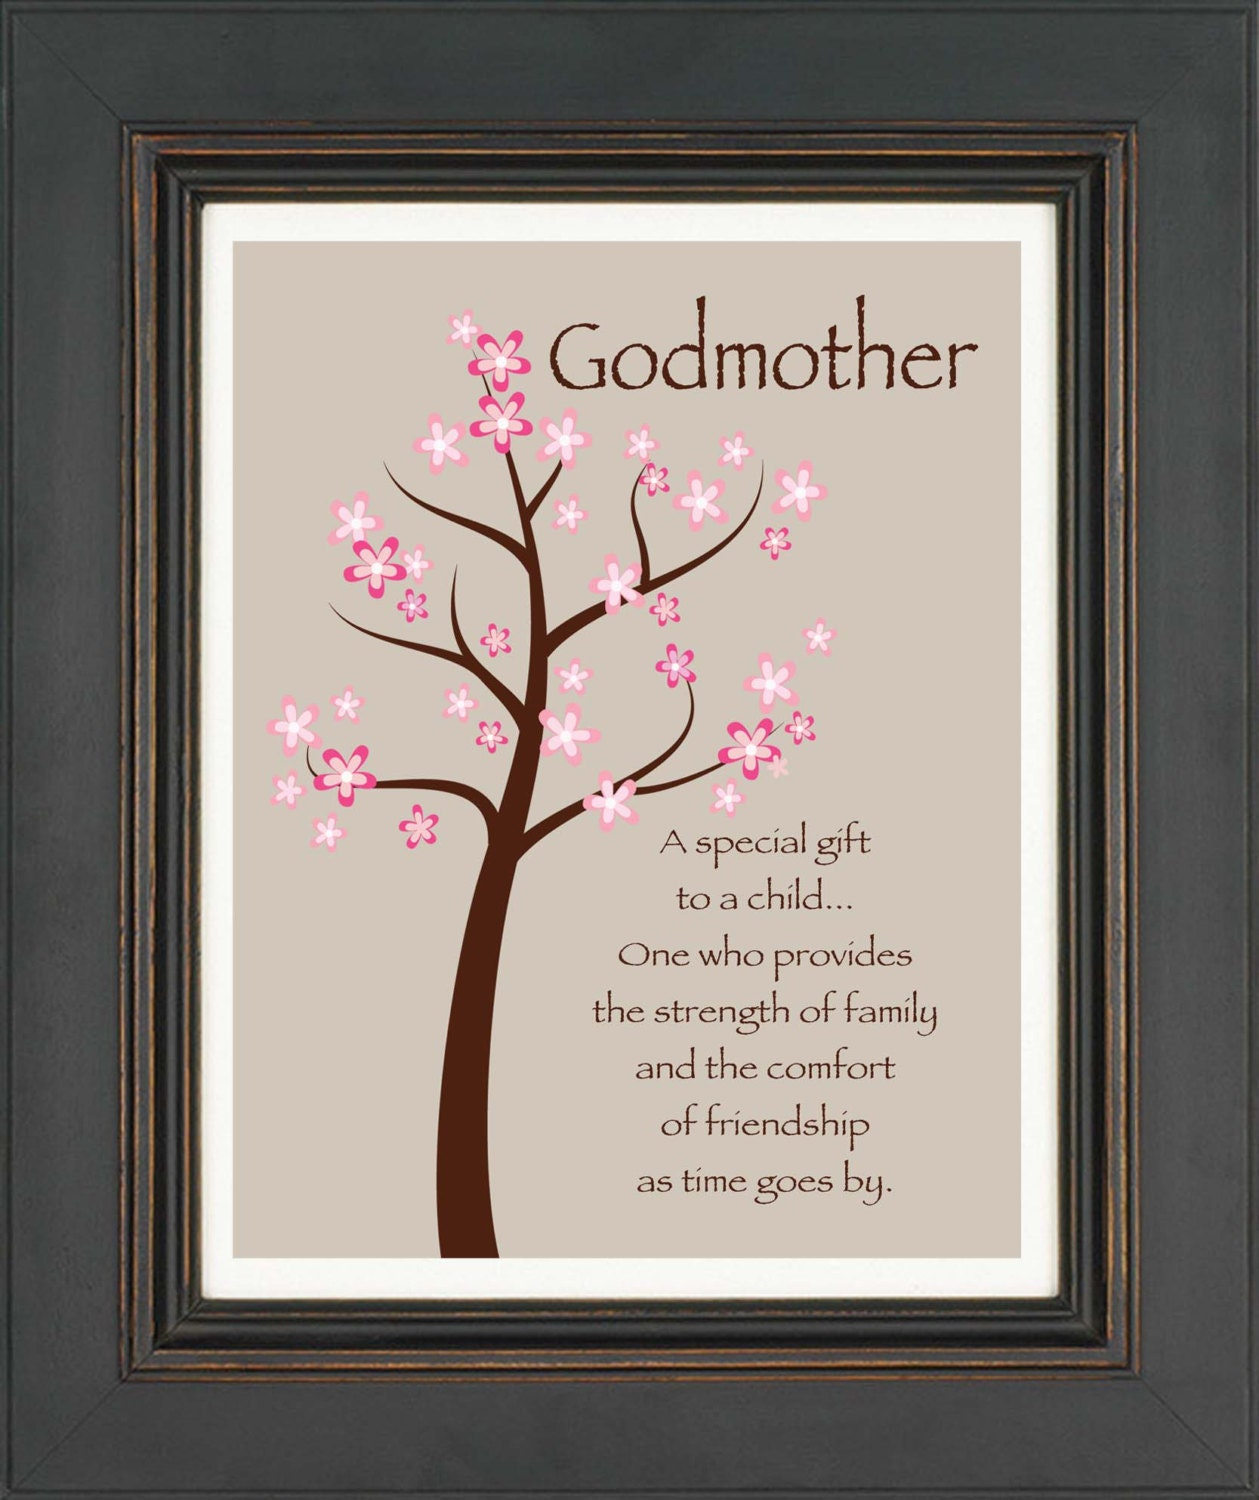 Wedding Gifts For Godparents : Godmother Gifts From Godchild